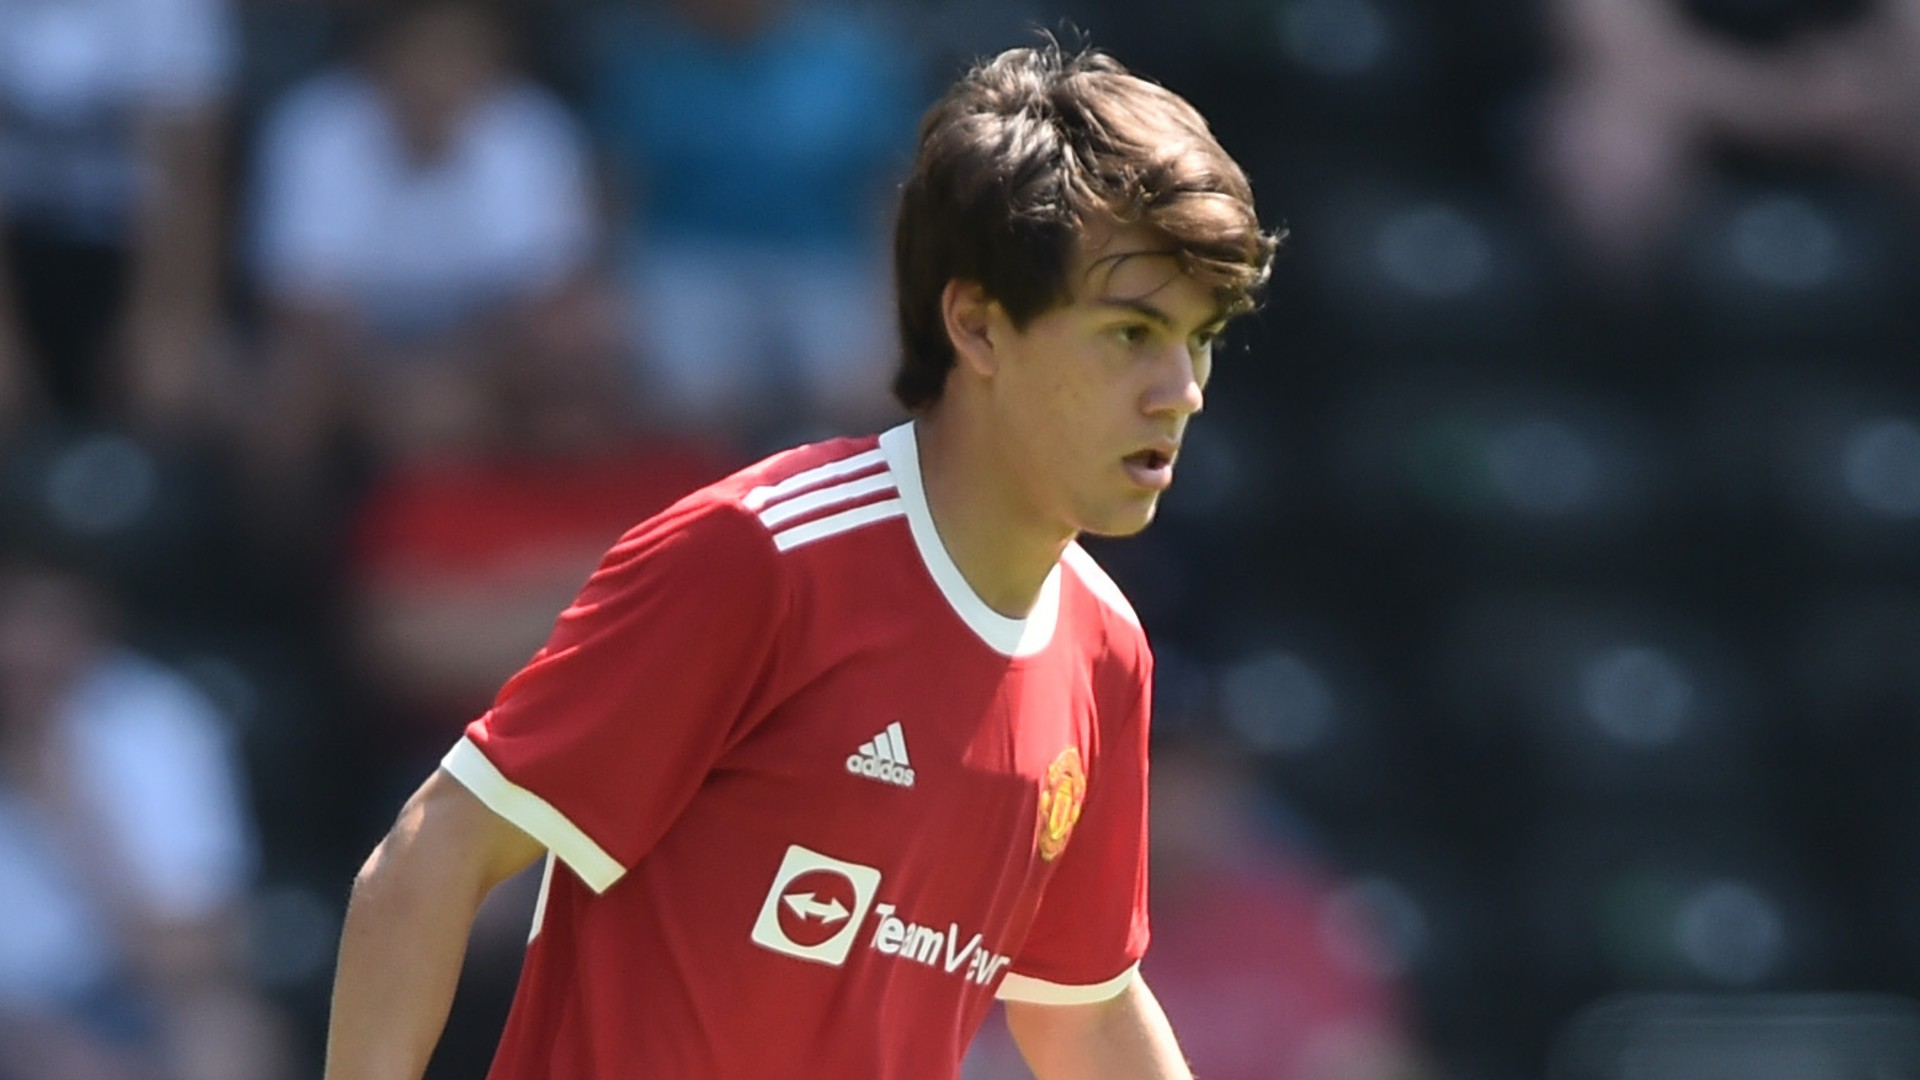 Pellistri determined to 'push forward' after first Manchester United goal